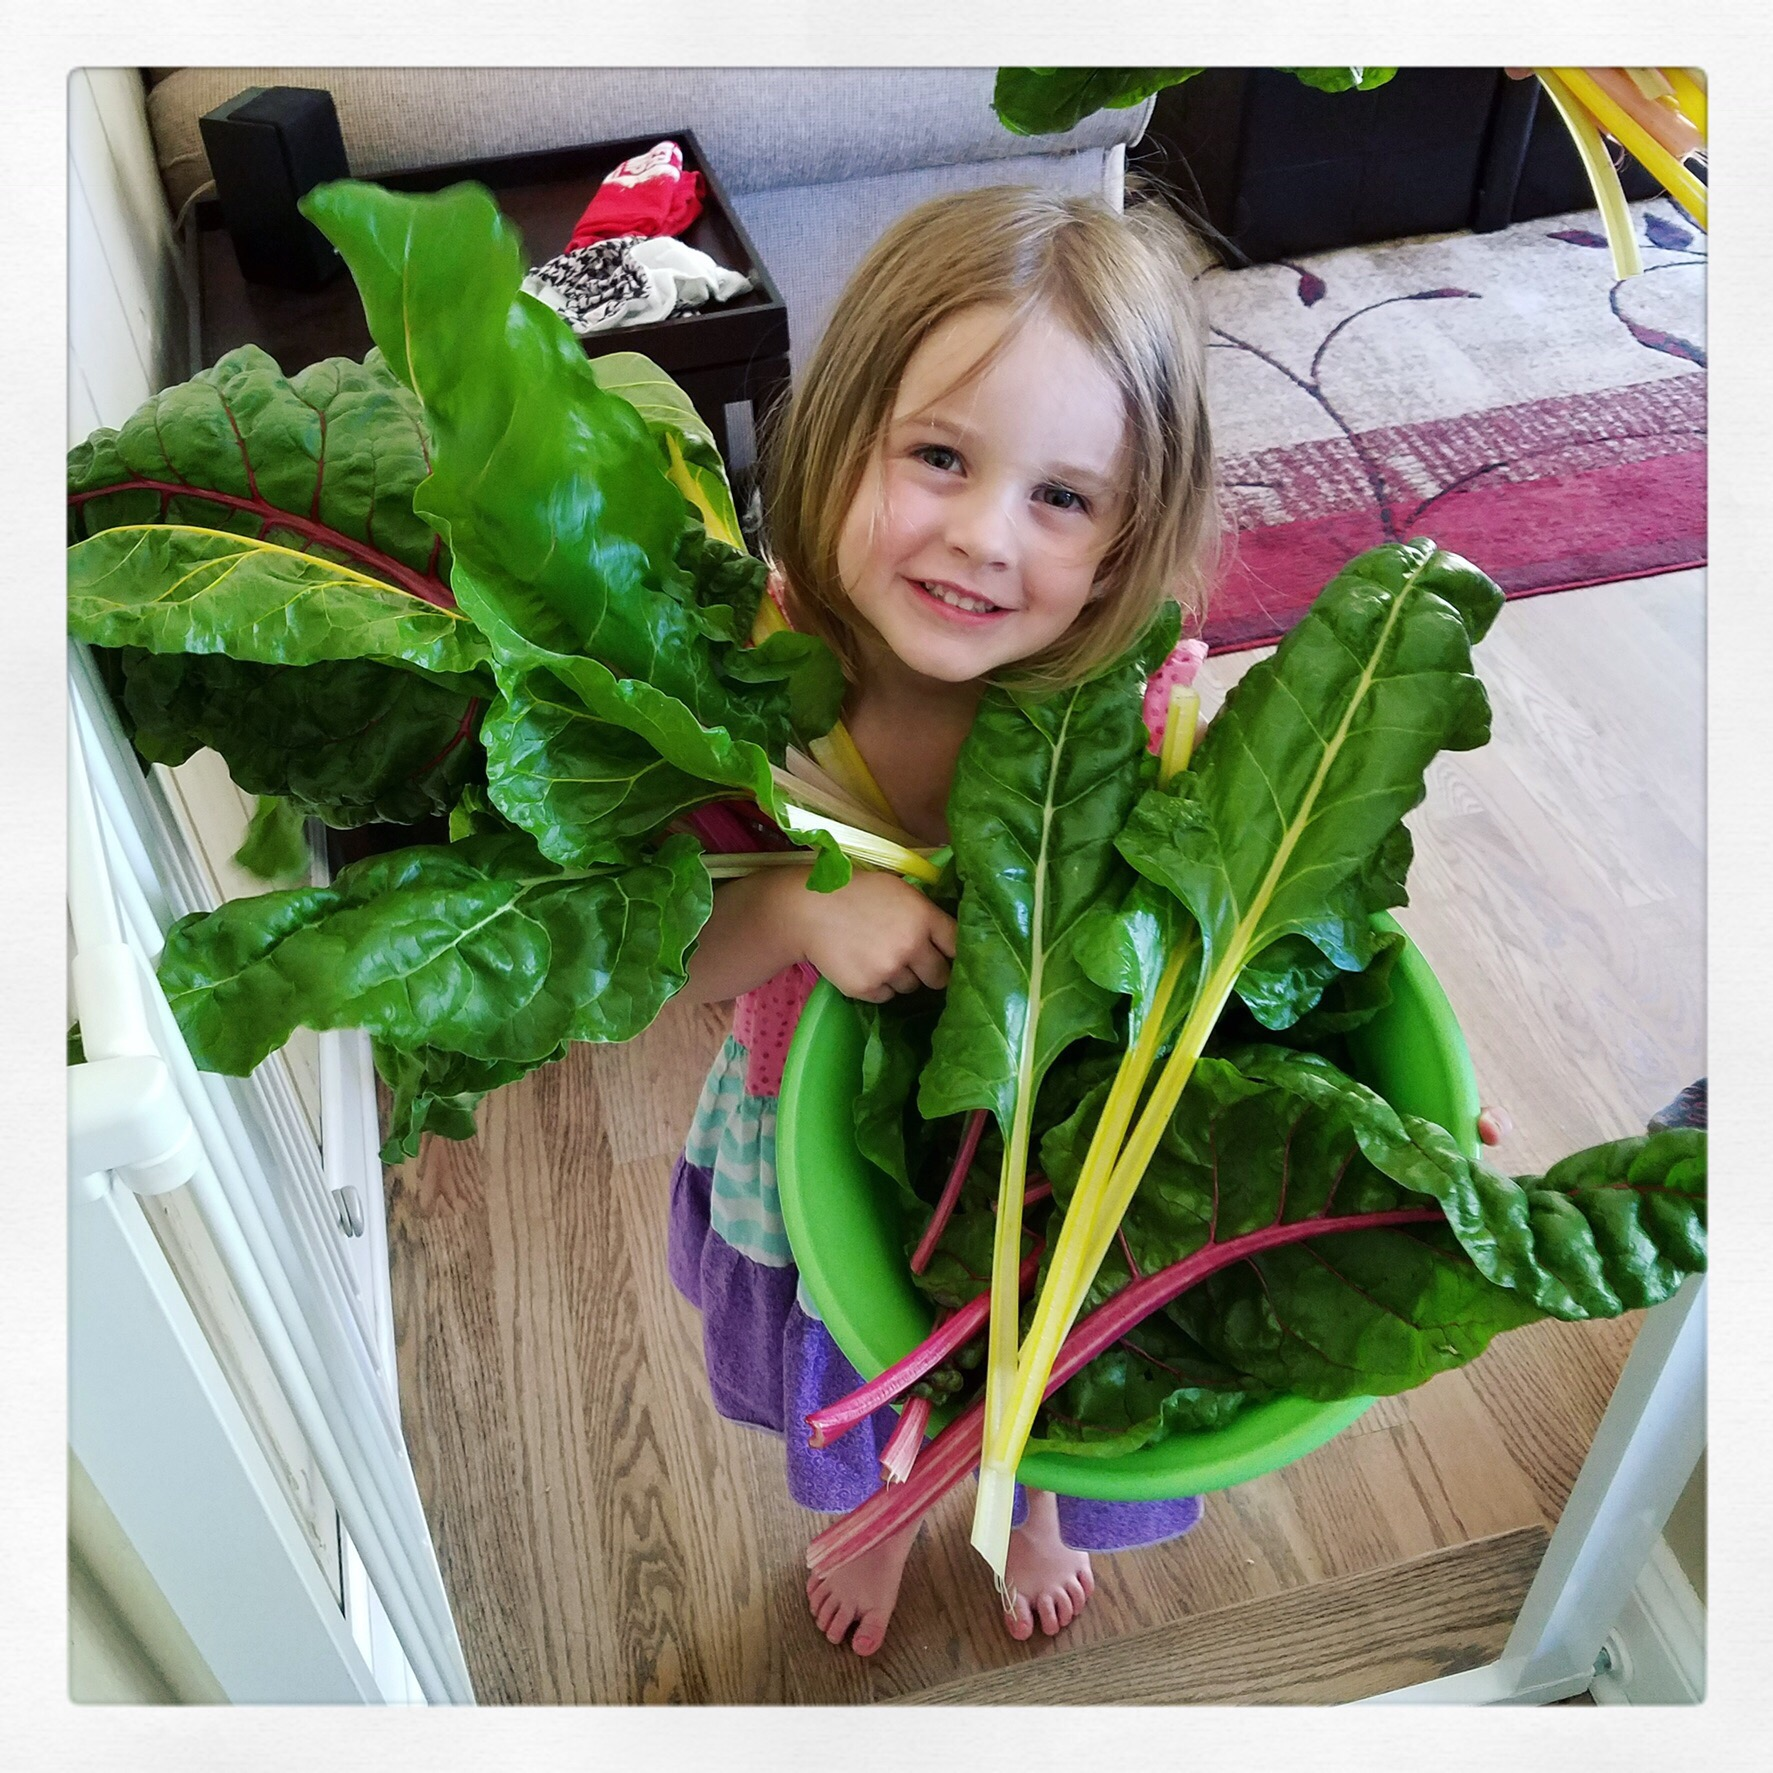 Carrying in the swiss-chard from the garden